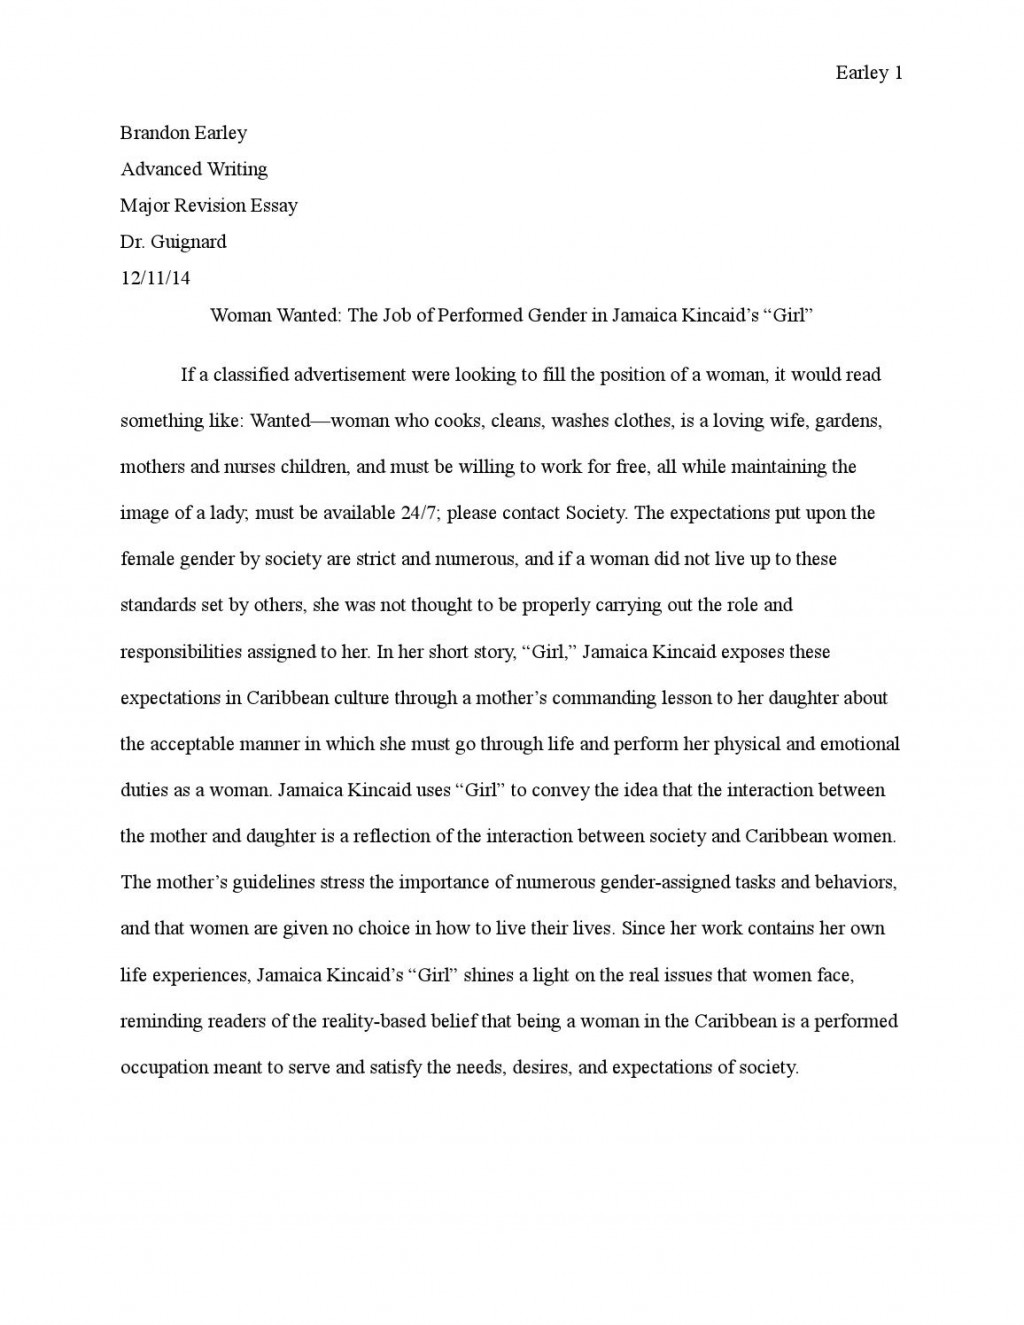 003 Girl By Jamaica Kincaid Essay Example Page 1 Marvelous Large